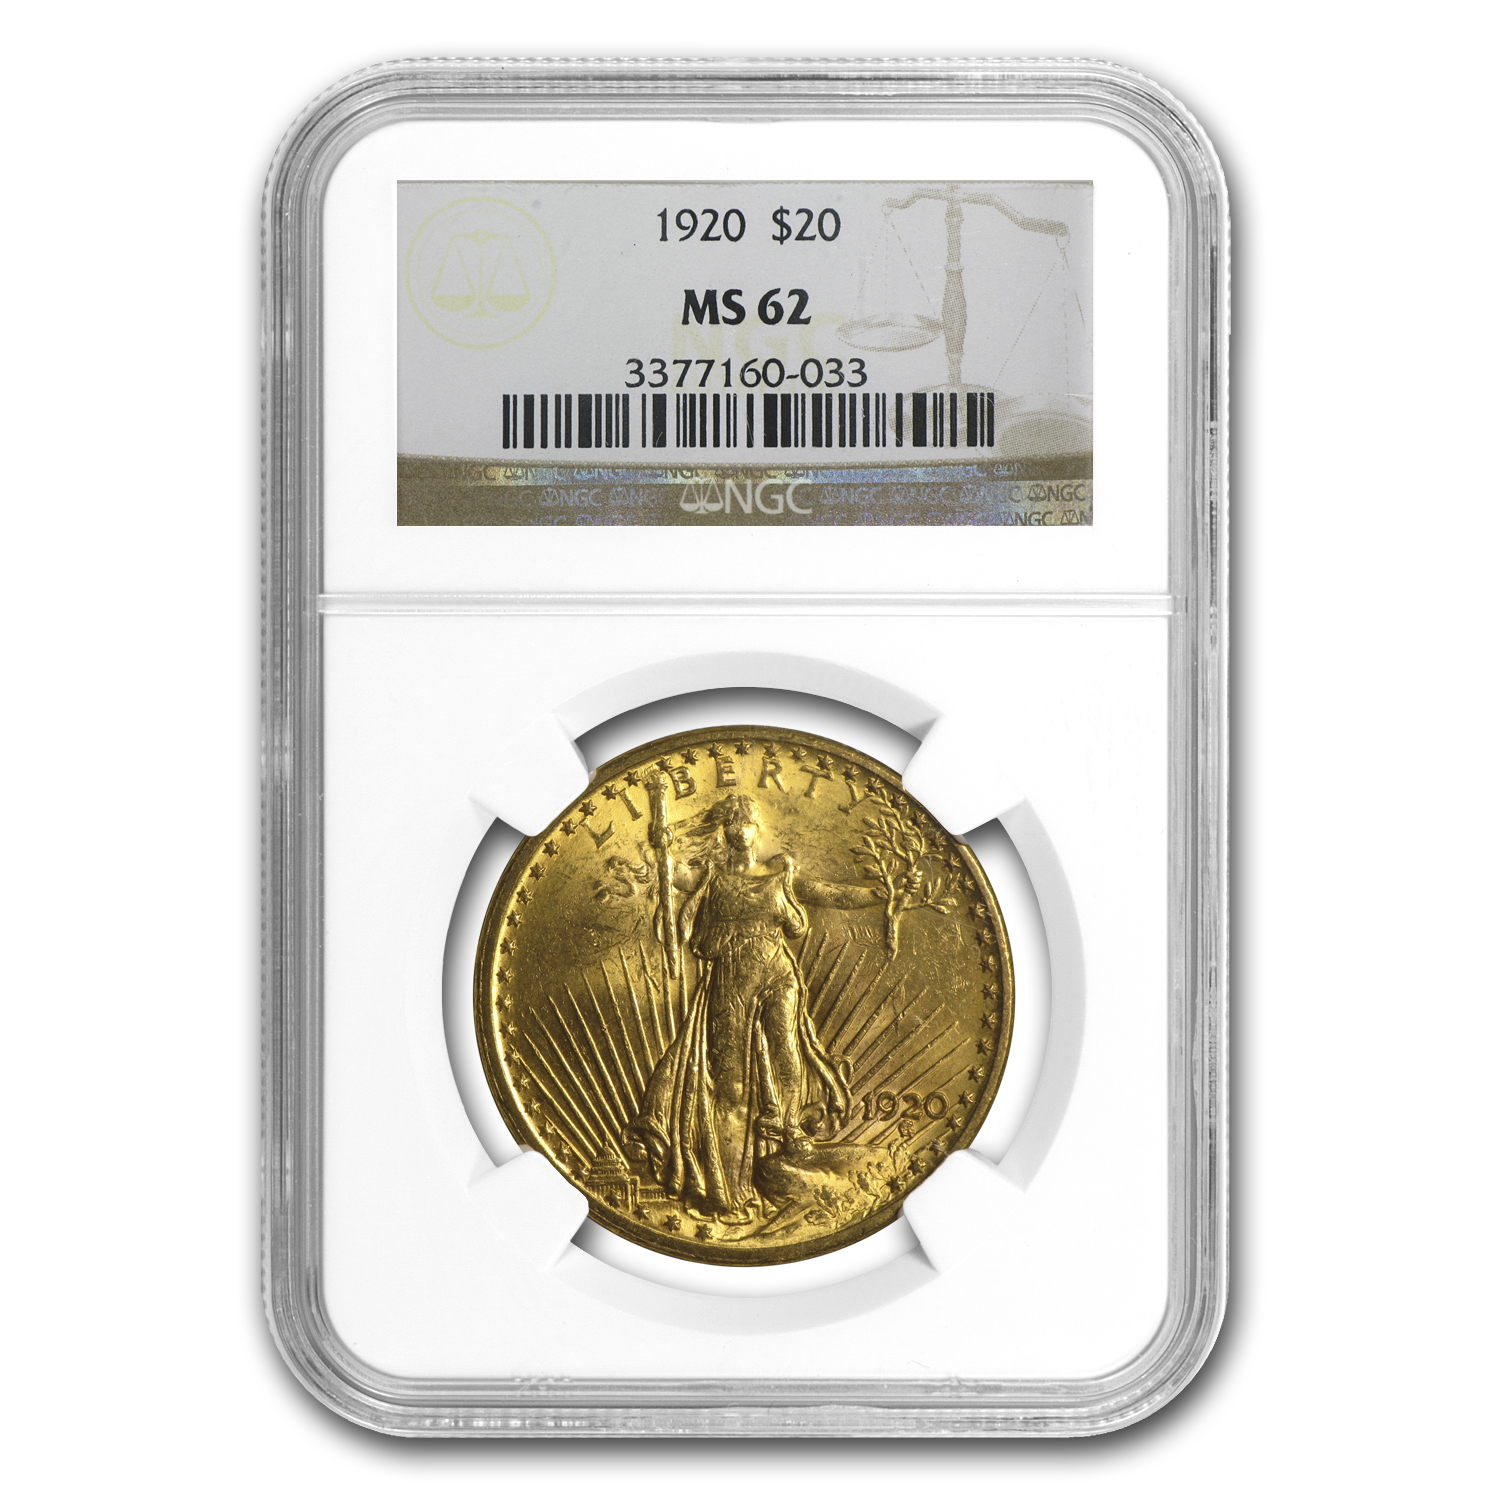 1920 $20 St. Gaudens Gold Double Eagle MS-62 NGC